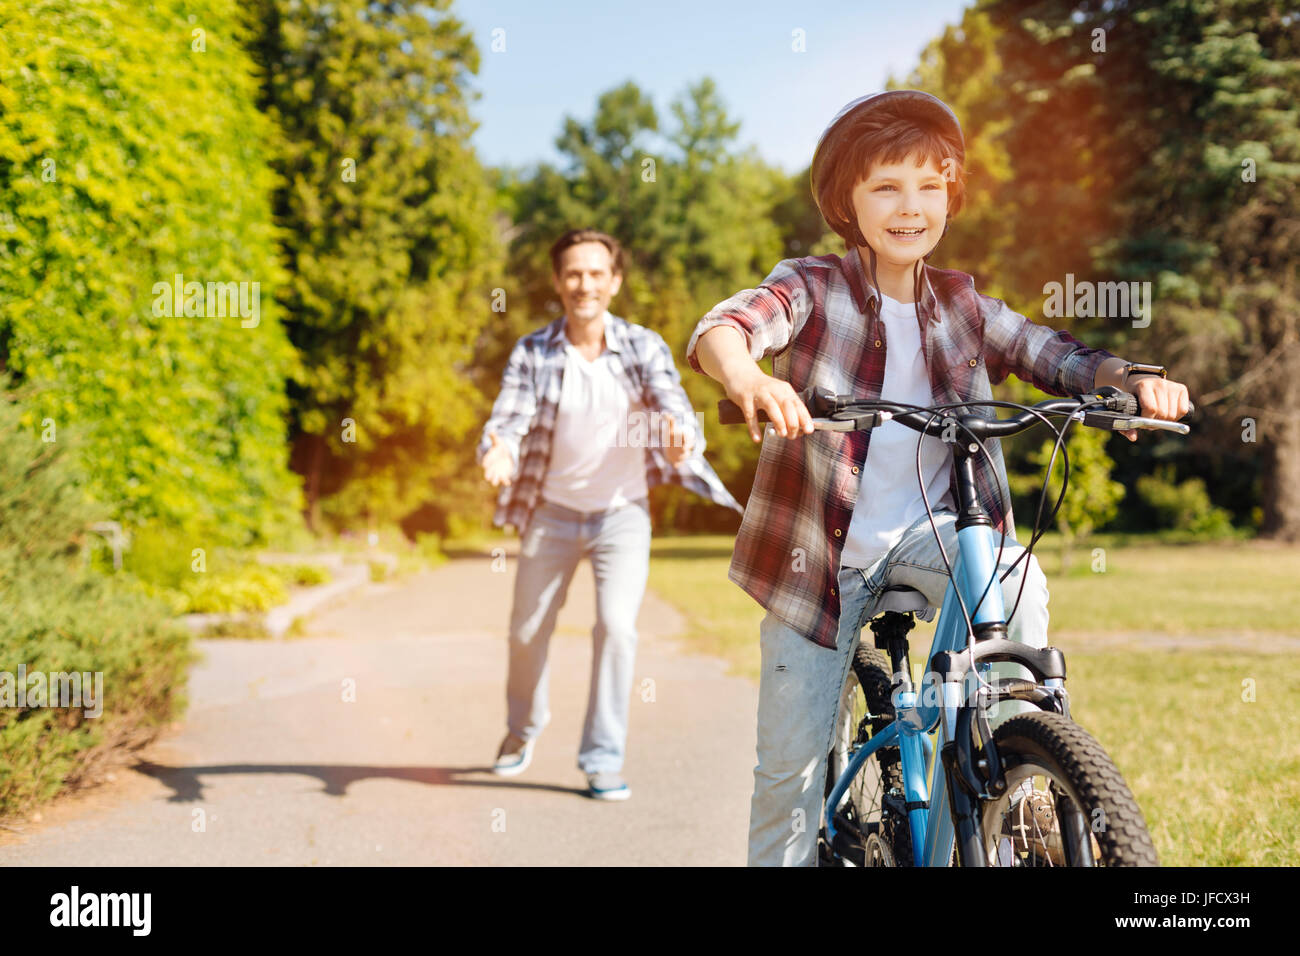 Letting go. Adorable emotional energetic child looking exited while mastering a new skill his father helping him - Stock Image